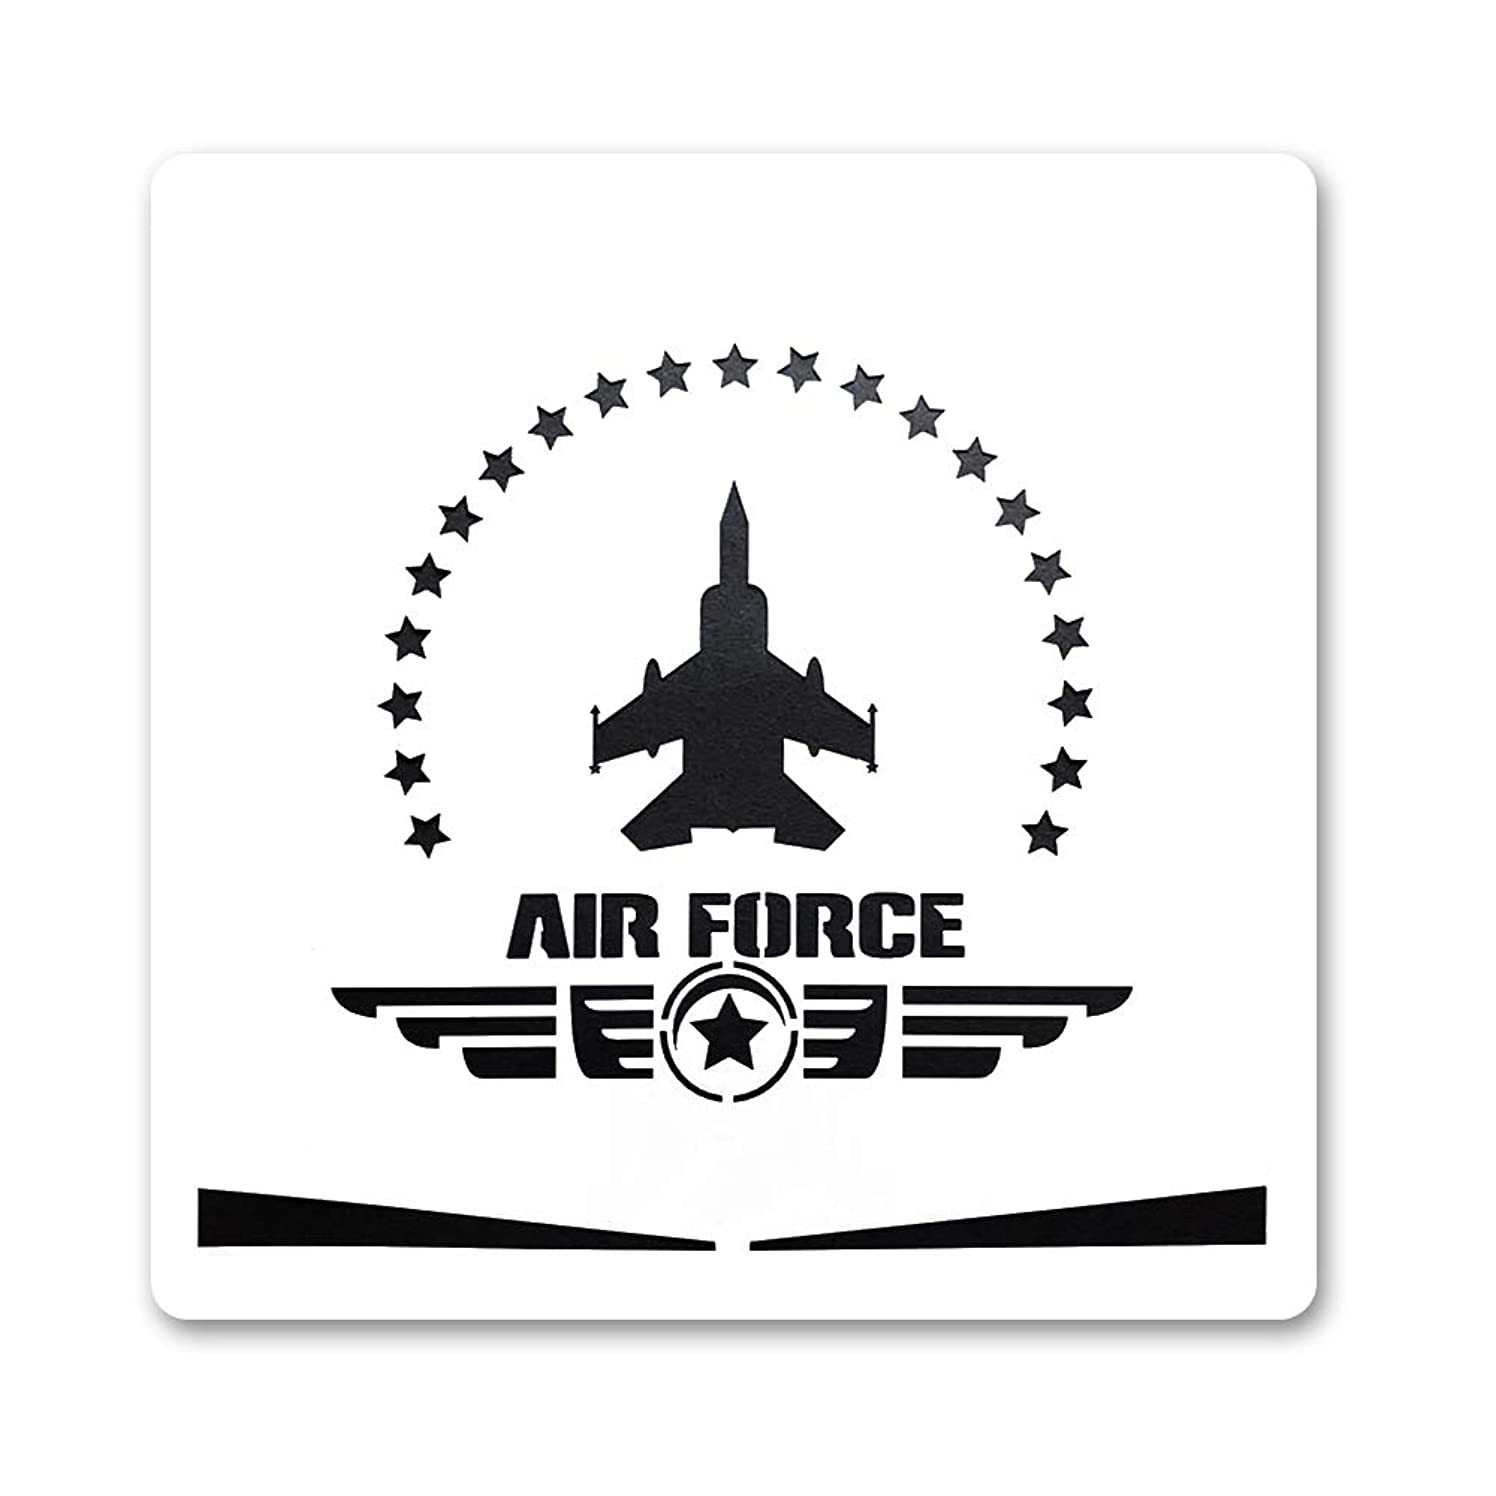 Large U.S Air Force Painting Stencil for Painting on Wood Fabric Walls Airbrush Reusable Mylar Template 12 x 12 inch (USAF Military Logo)